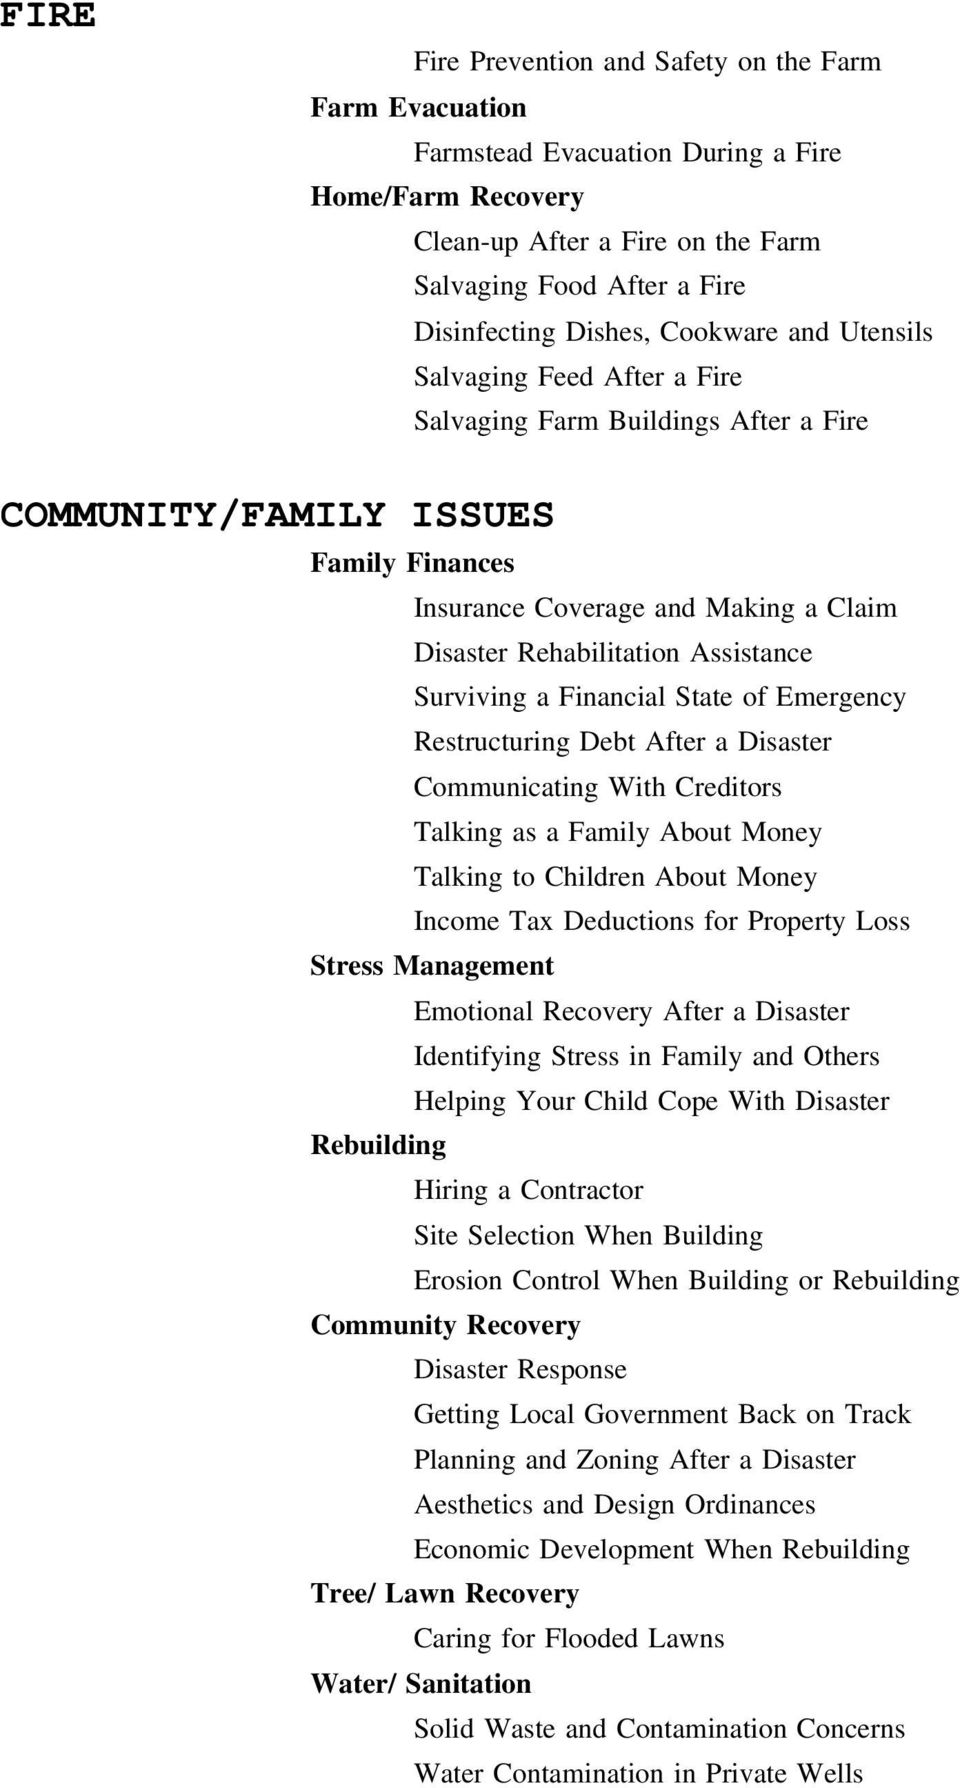 Assistance Surviving a Financial State of Emergency Restructuring Debt After a Disaster Communicating With Creditors Talking as a Family About Money Talking to Children About Money Income Tax